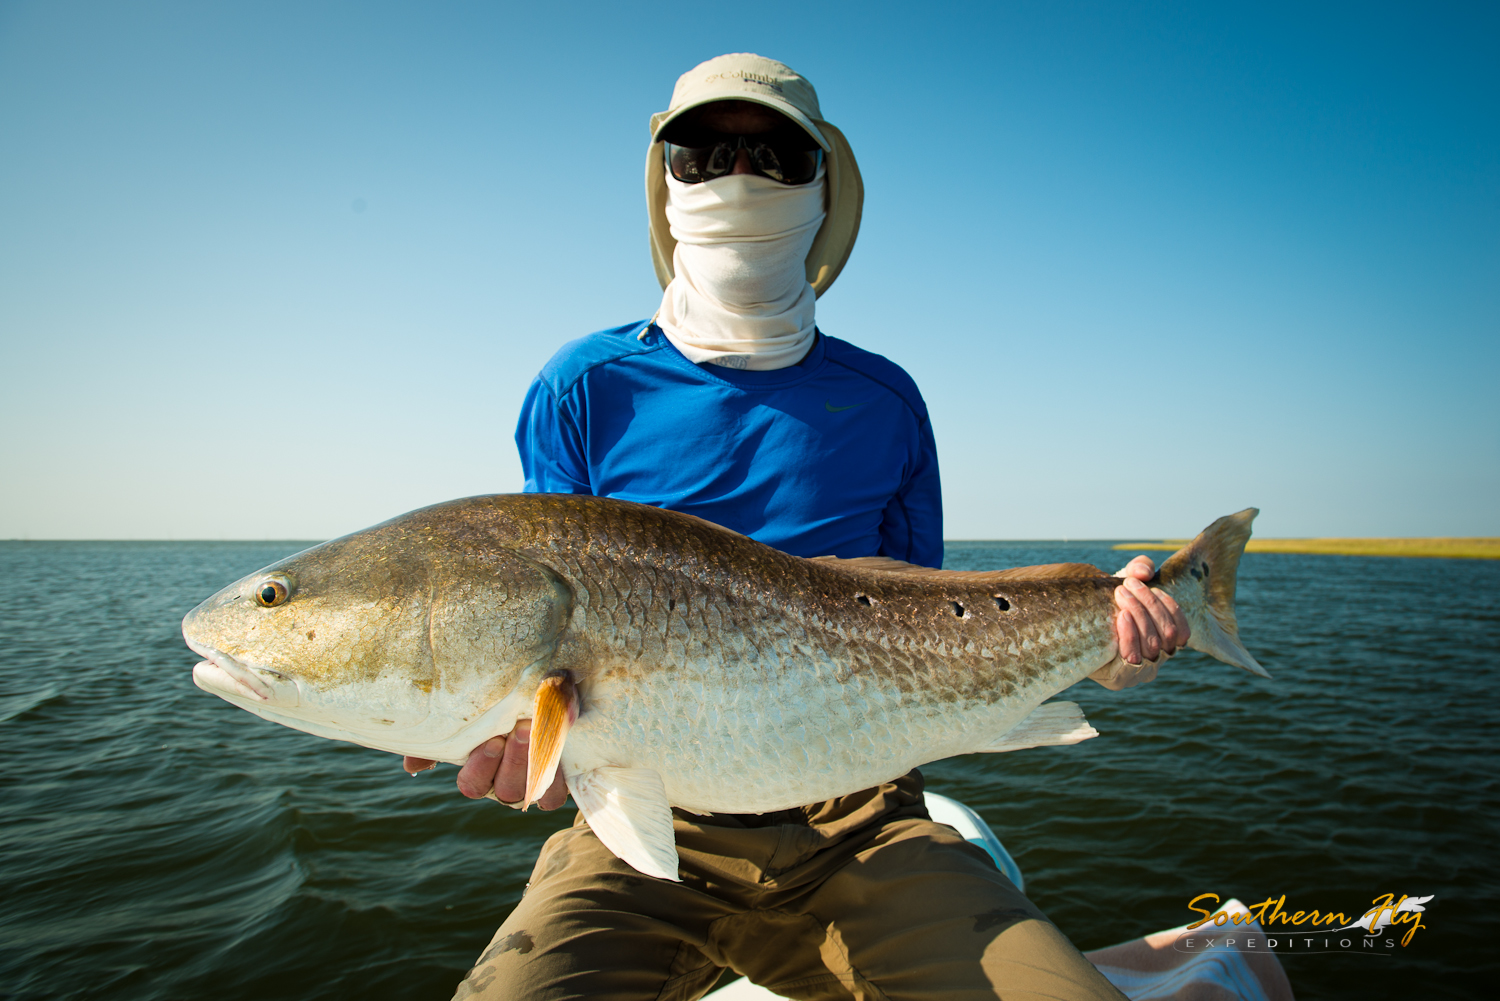 charter fishing louisiana with southern fly expeditions and captain brandon keck